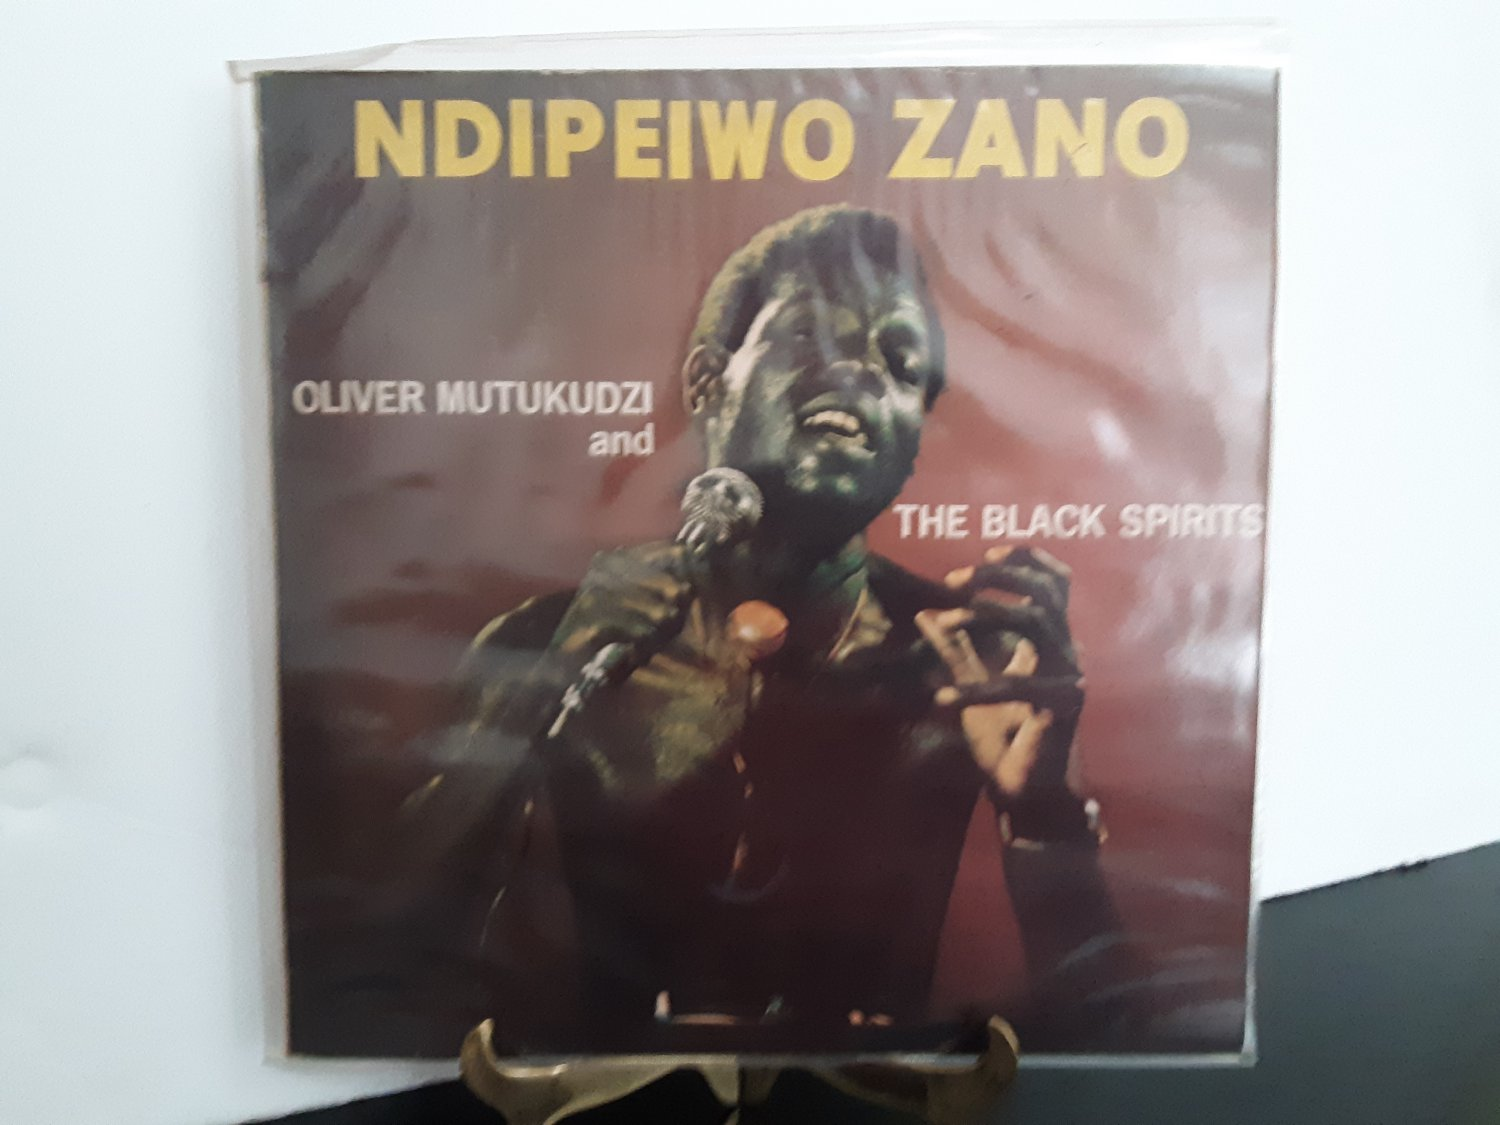 Ultra Rare Vinyl - Oliver Mutukudzi & the Black Spirits - Ndipeiwo Zano  - 1978